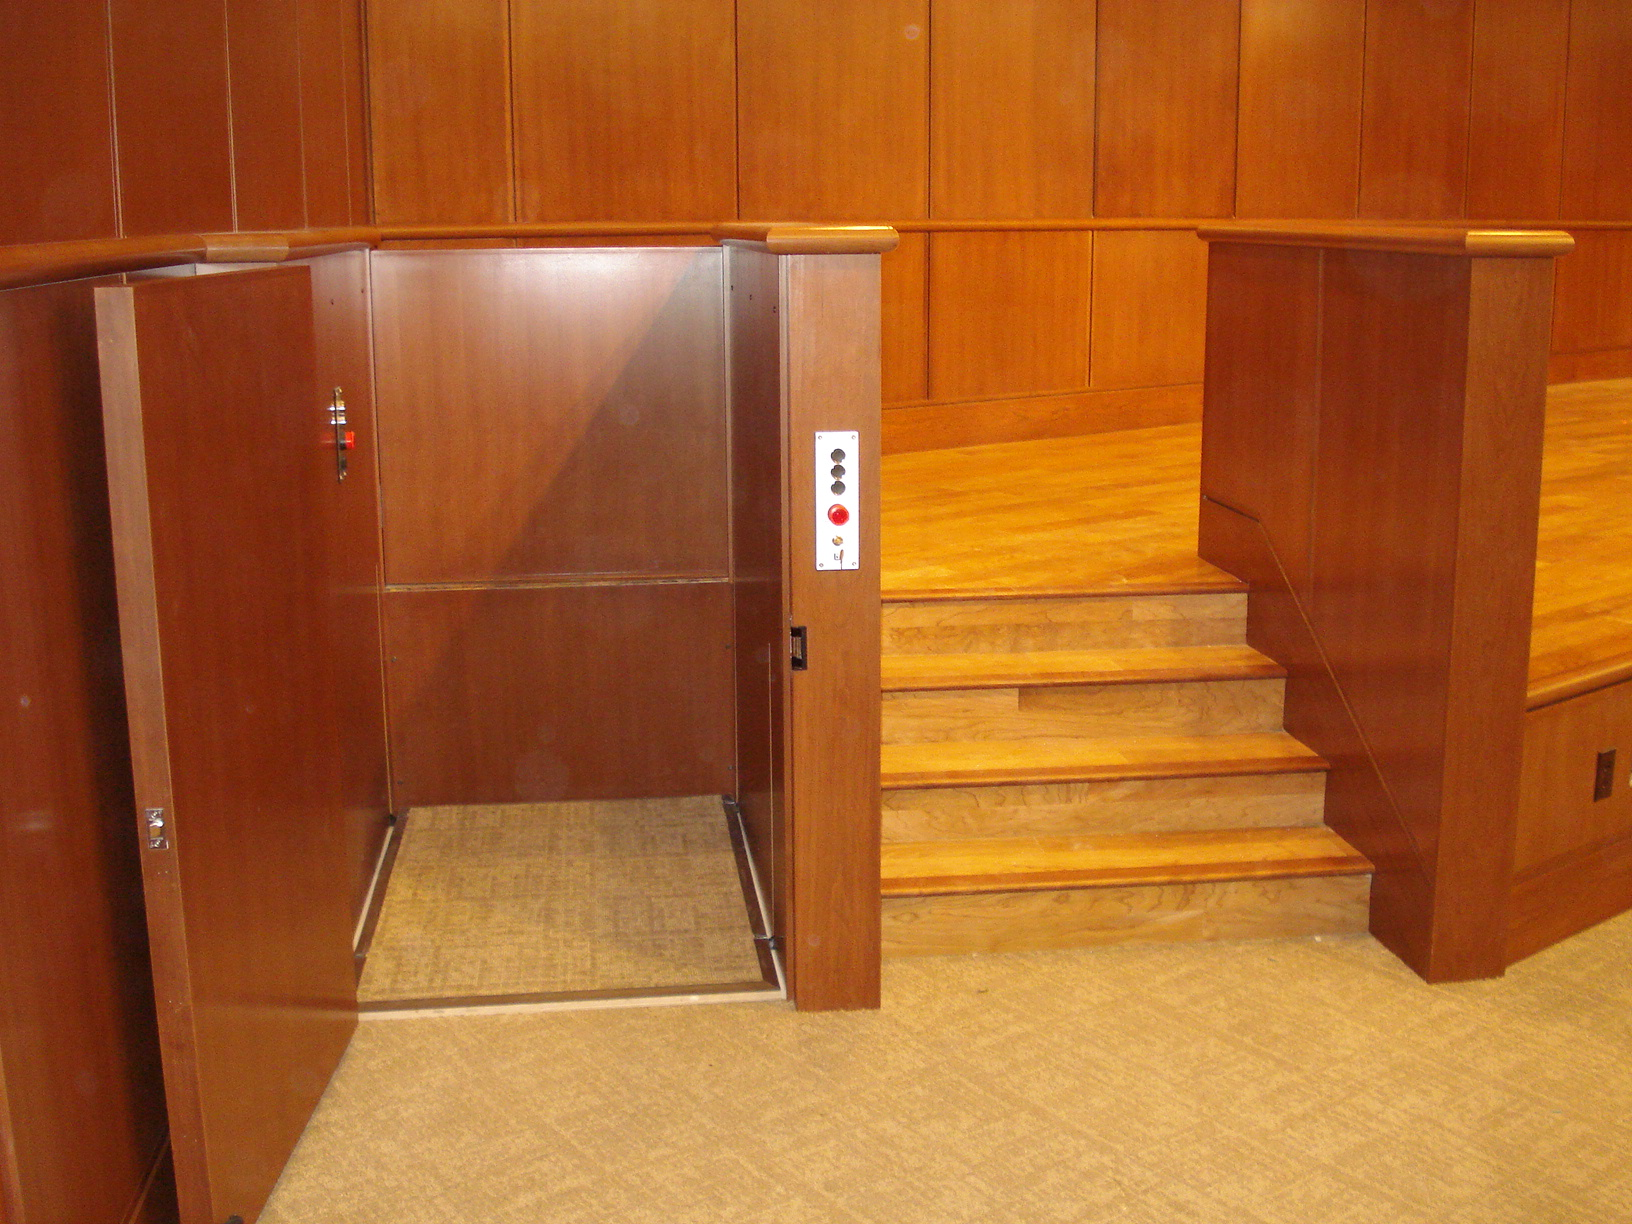 Lift door at lower level is opened. Lift in auditorium provides access to and from the stage. Lift is positioned next to stairs and is encased in wood millwork blending in with surrounding aesthetics. Lift function readily available, independently operable.